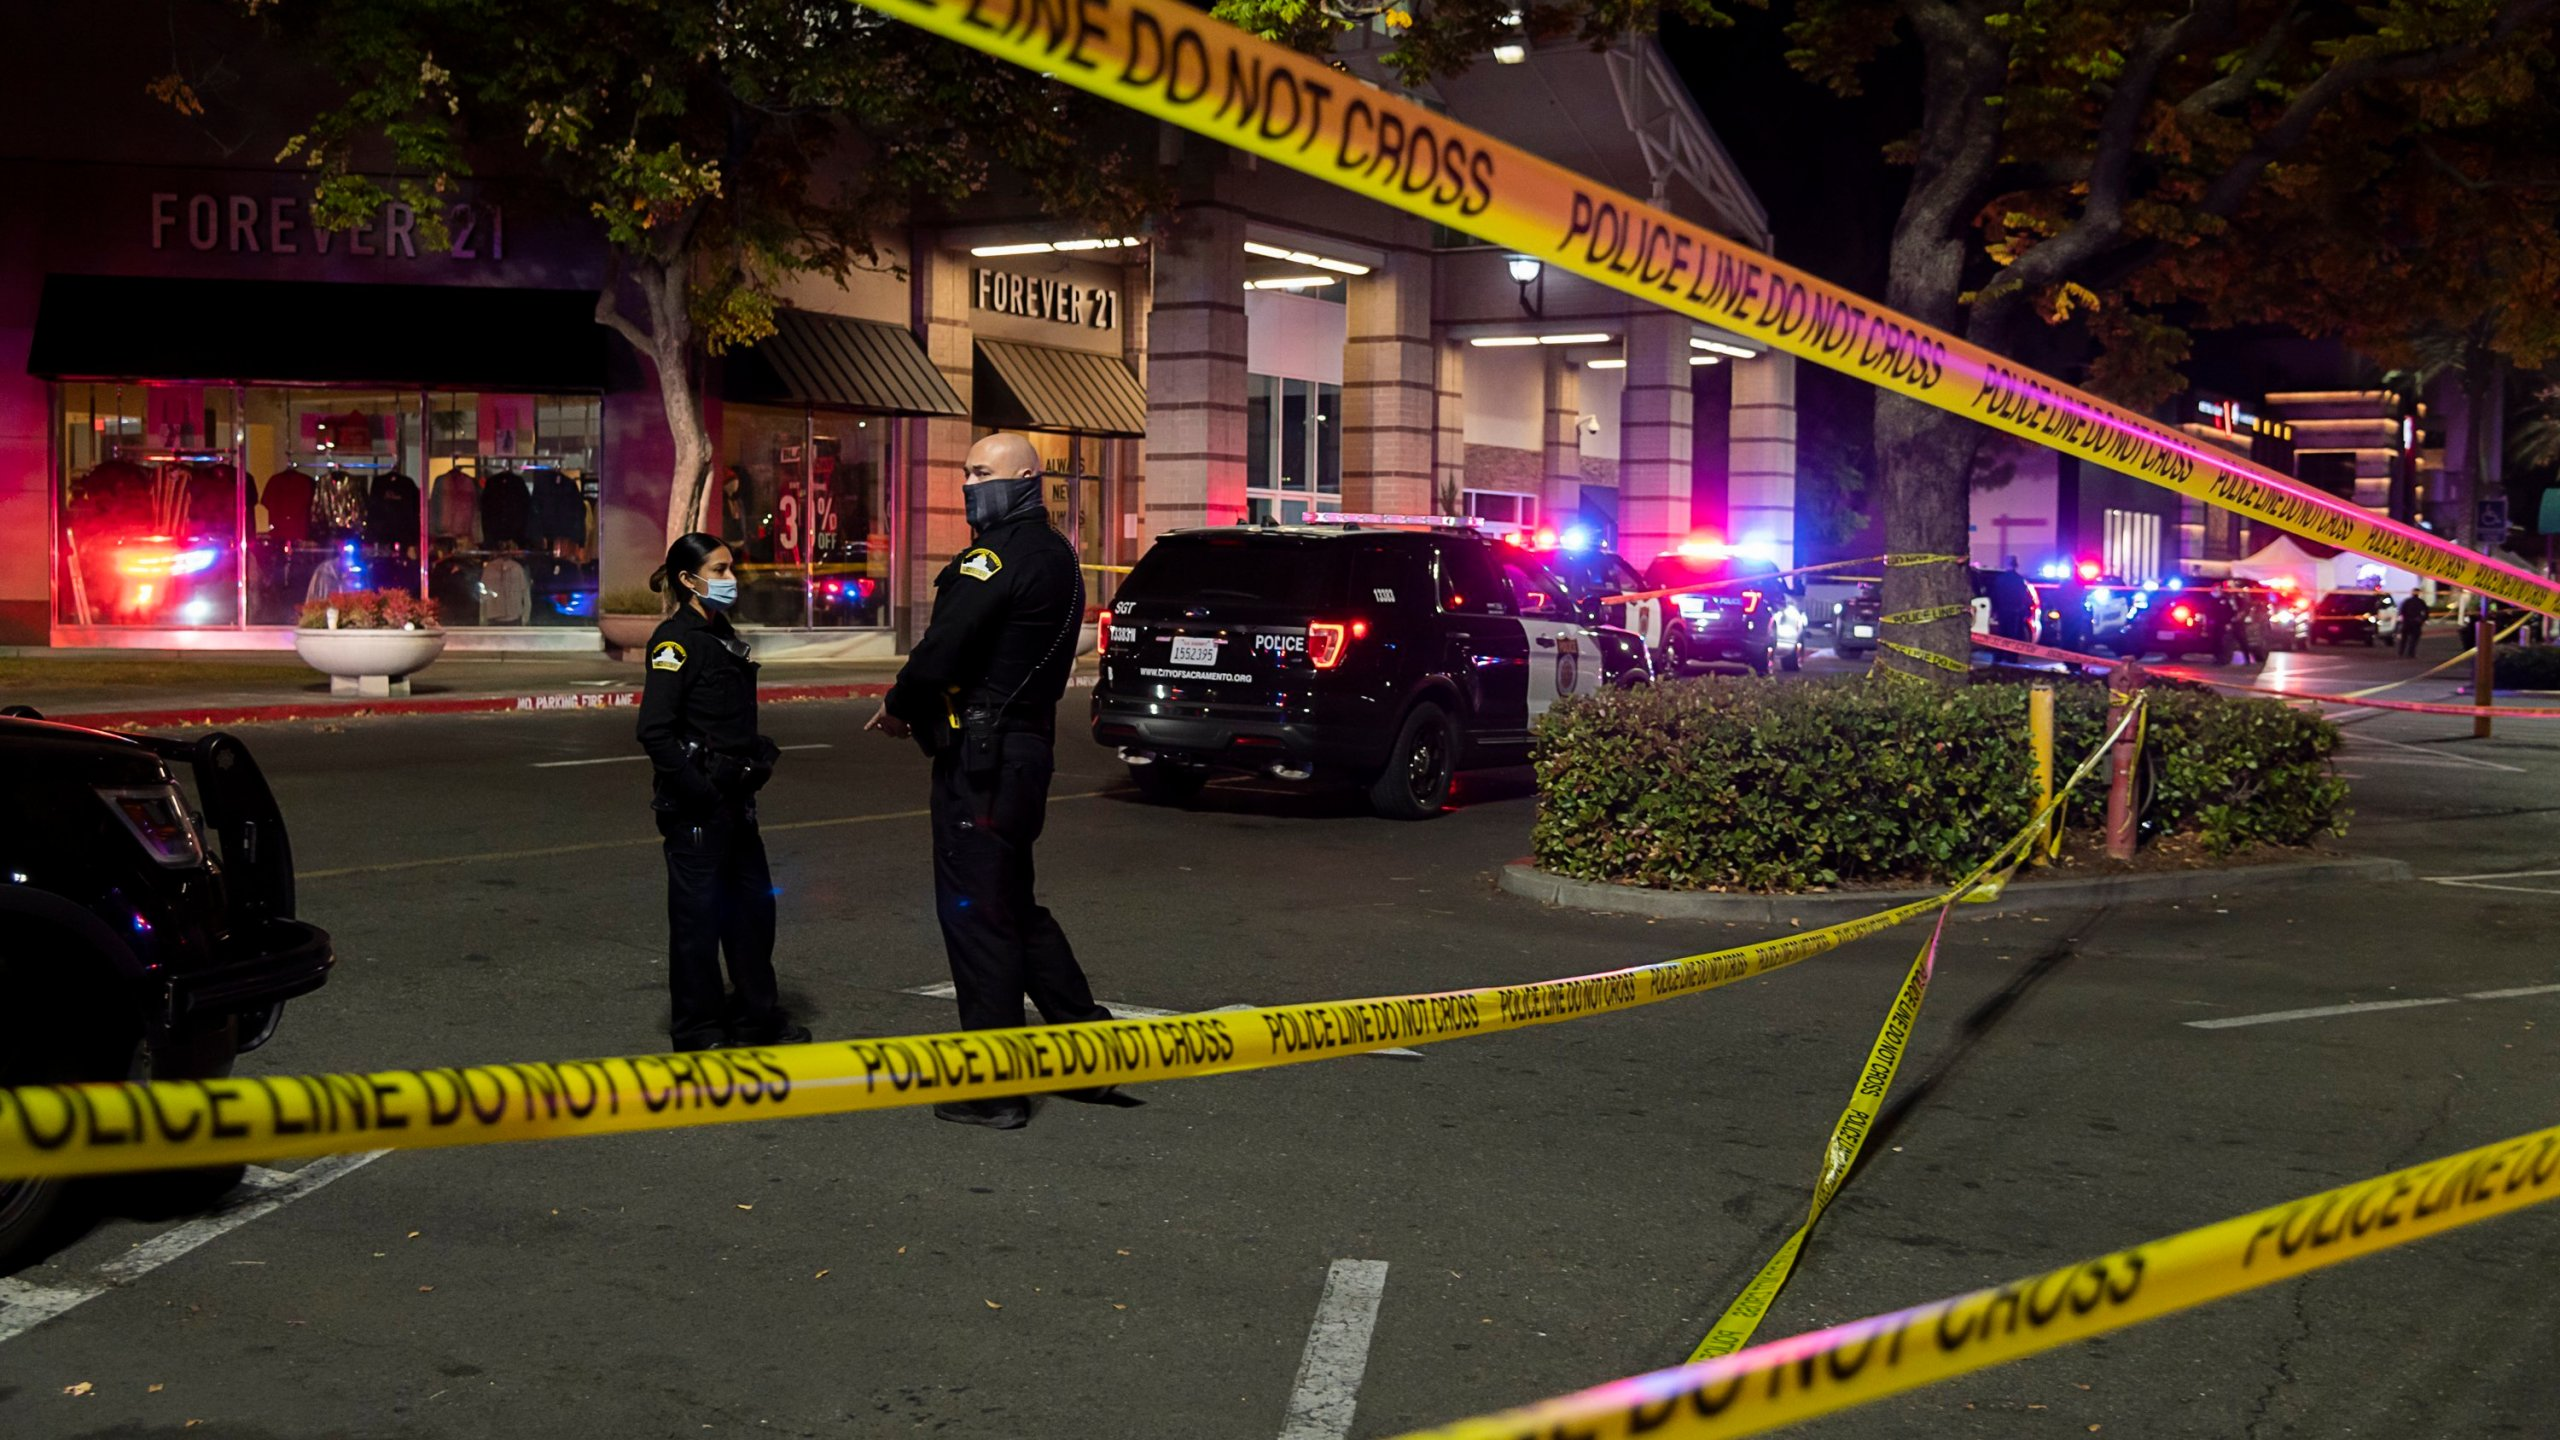 Police stand outside Arden Fair Mall in Sacramento after a shooting that left one person dead and another critically injured on Nov. 27, 2020. (Paul Kitagaki Jr. / The Sacramento Bee via Associated Press)